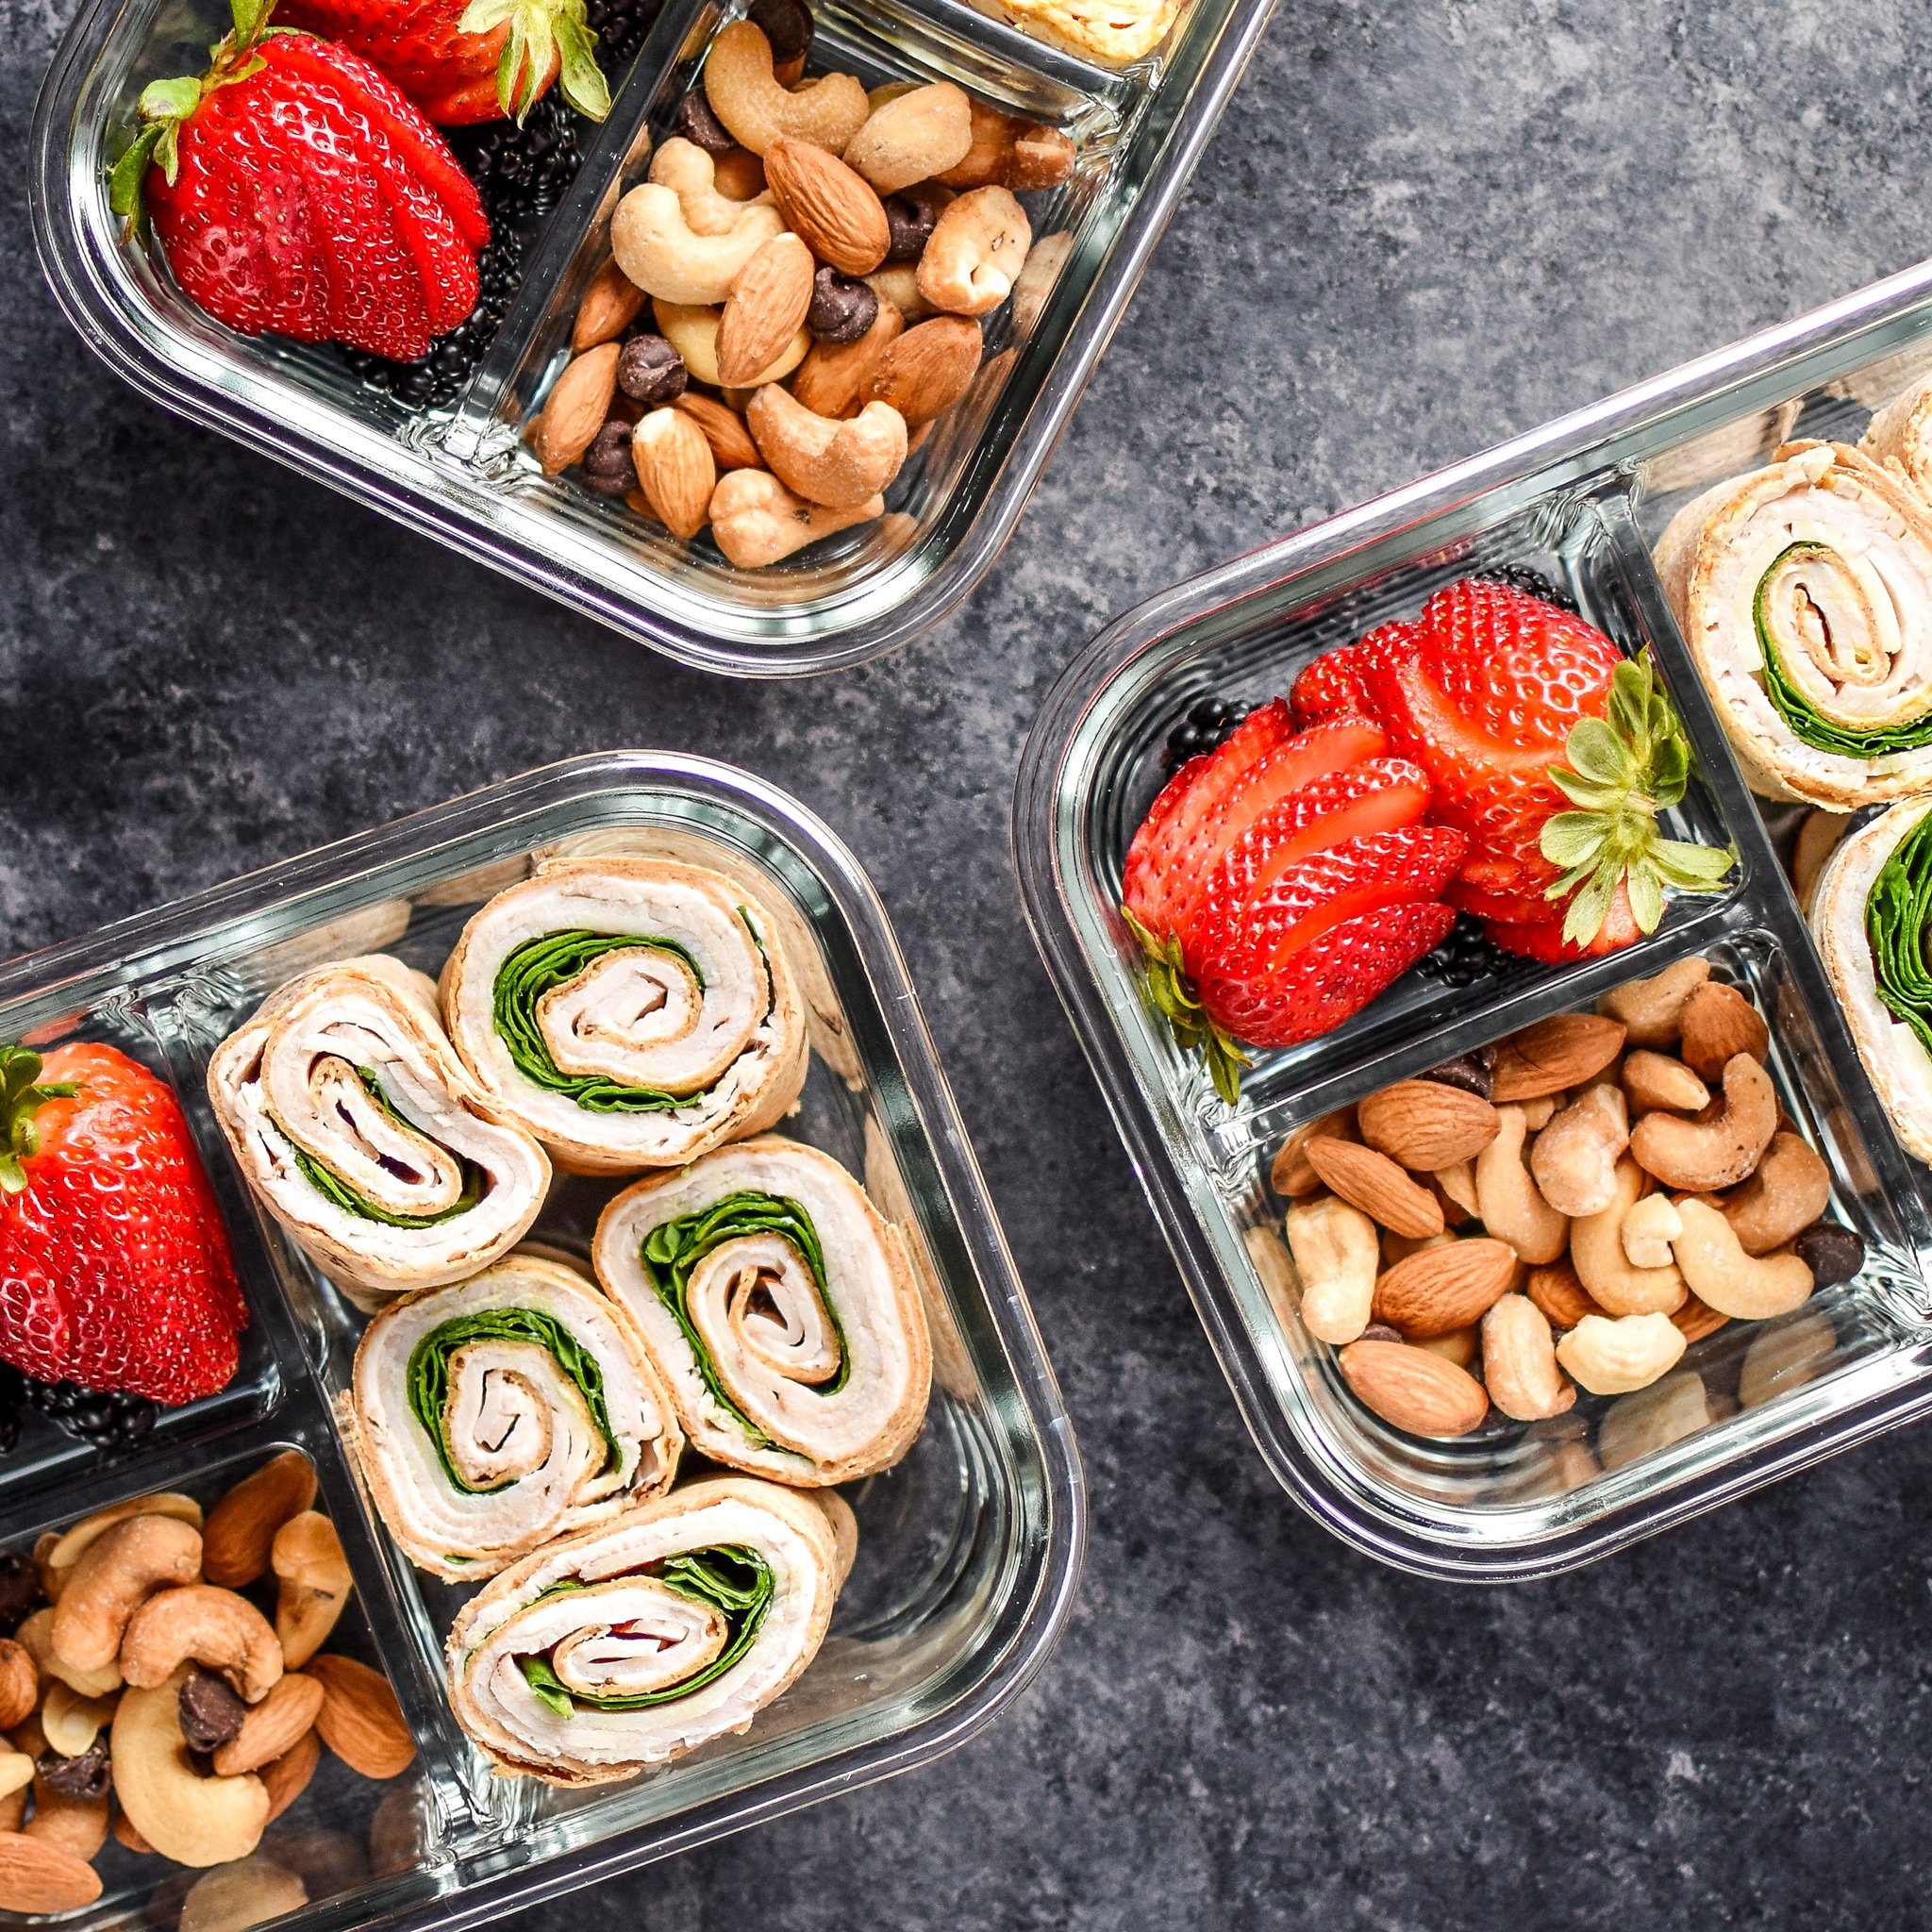 Top view of three Easy Turkey Pinwheel Meal Prep lunches with pinwheels, berries and nuts.